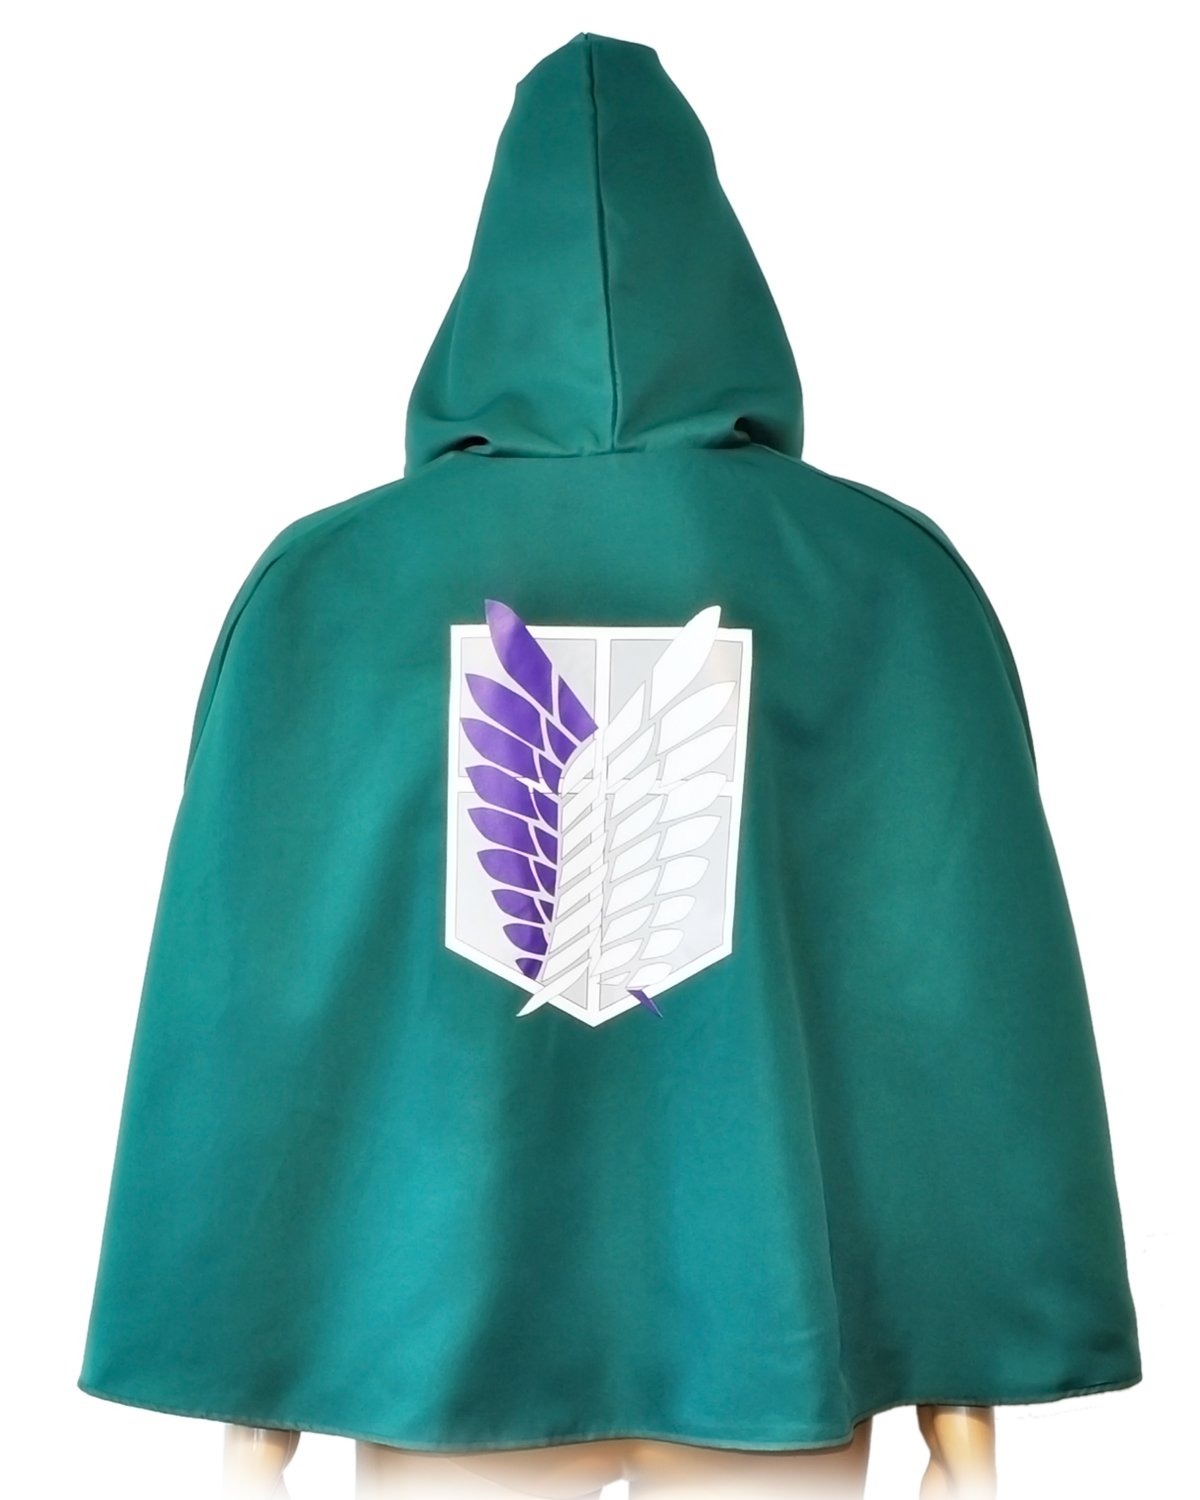 COSAUG Attack on Titan Costume Japanese Anime Cosplay Cape Green with Double Lining (M)